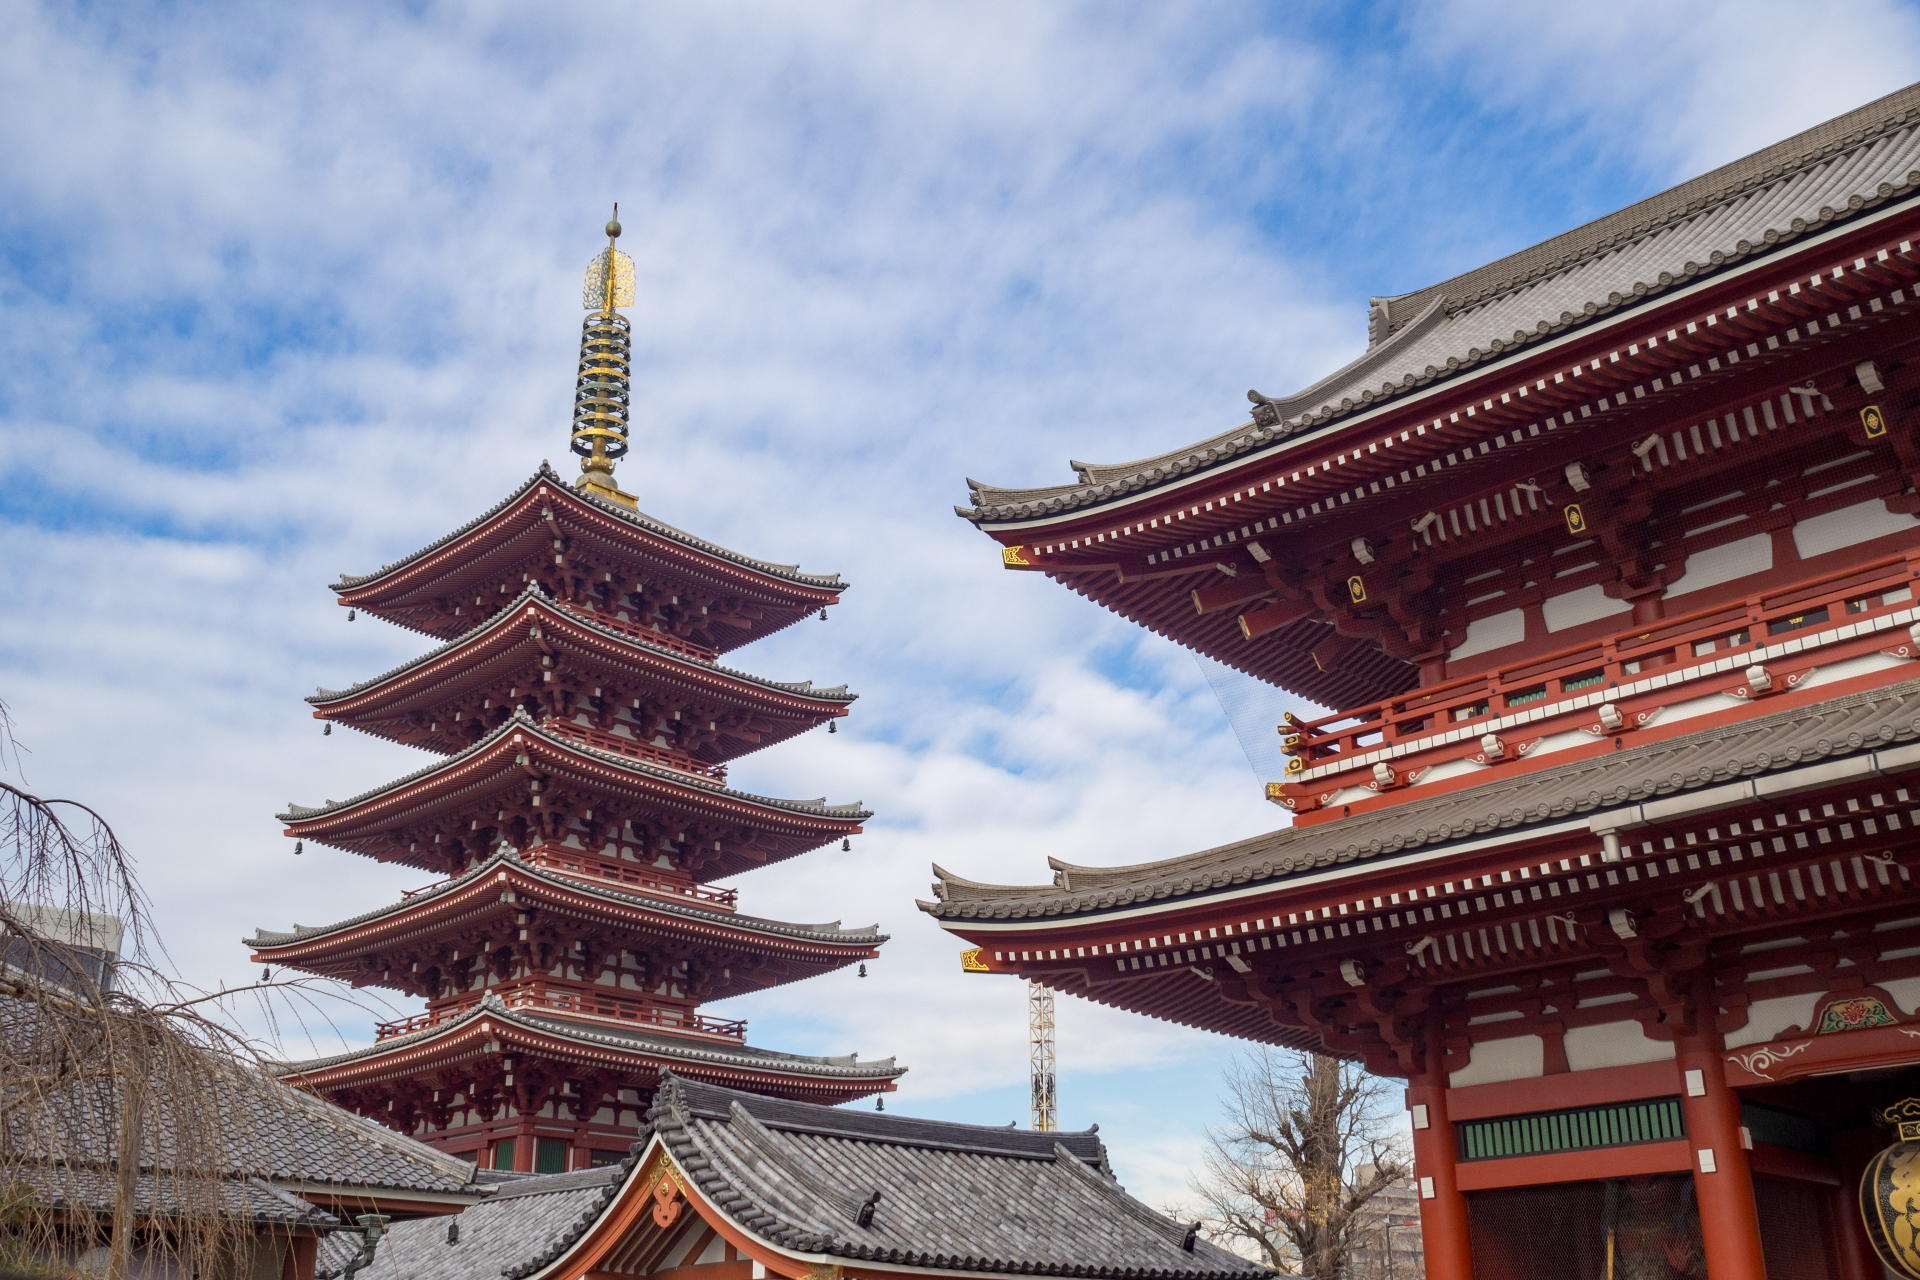 Tokyo Asakusa Half Day Walking Tour with Local Guide